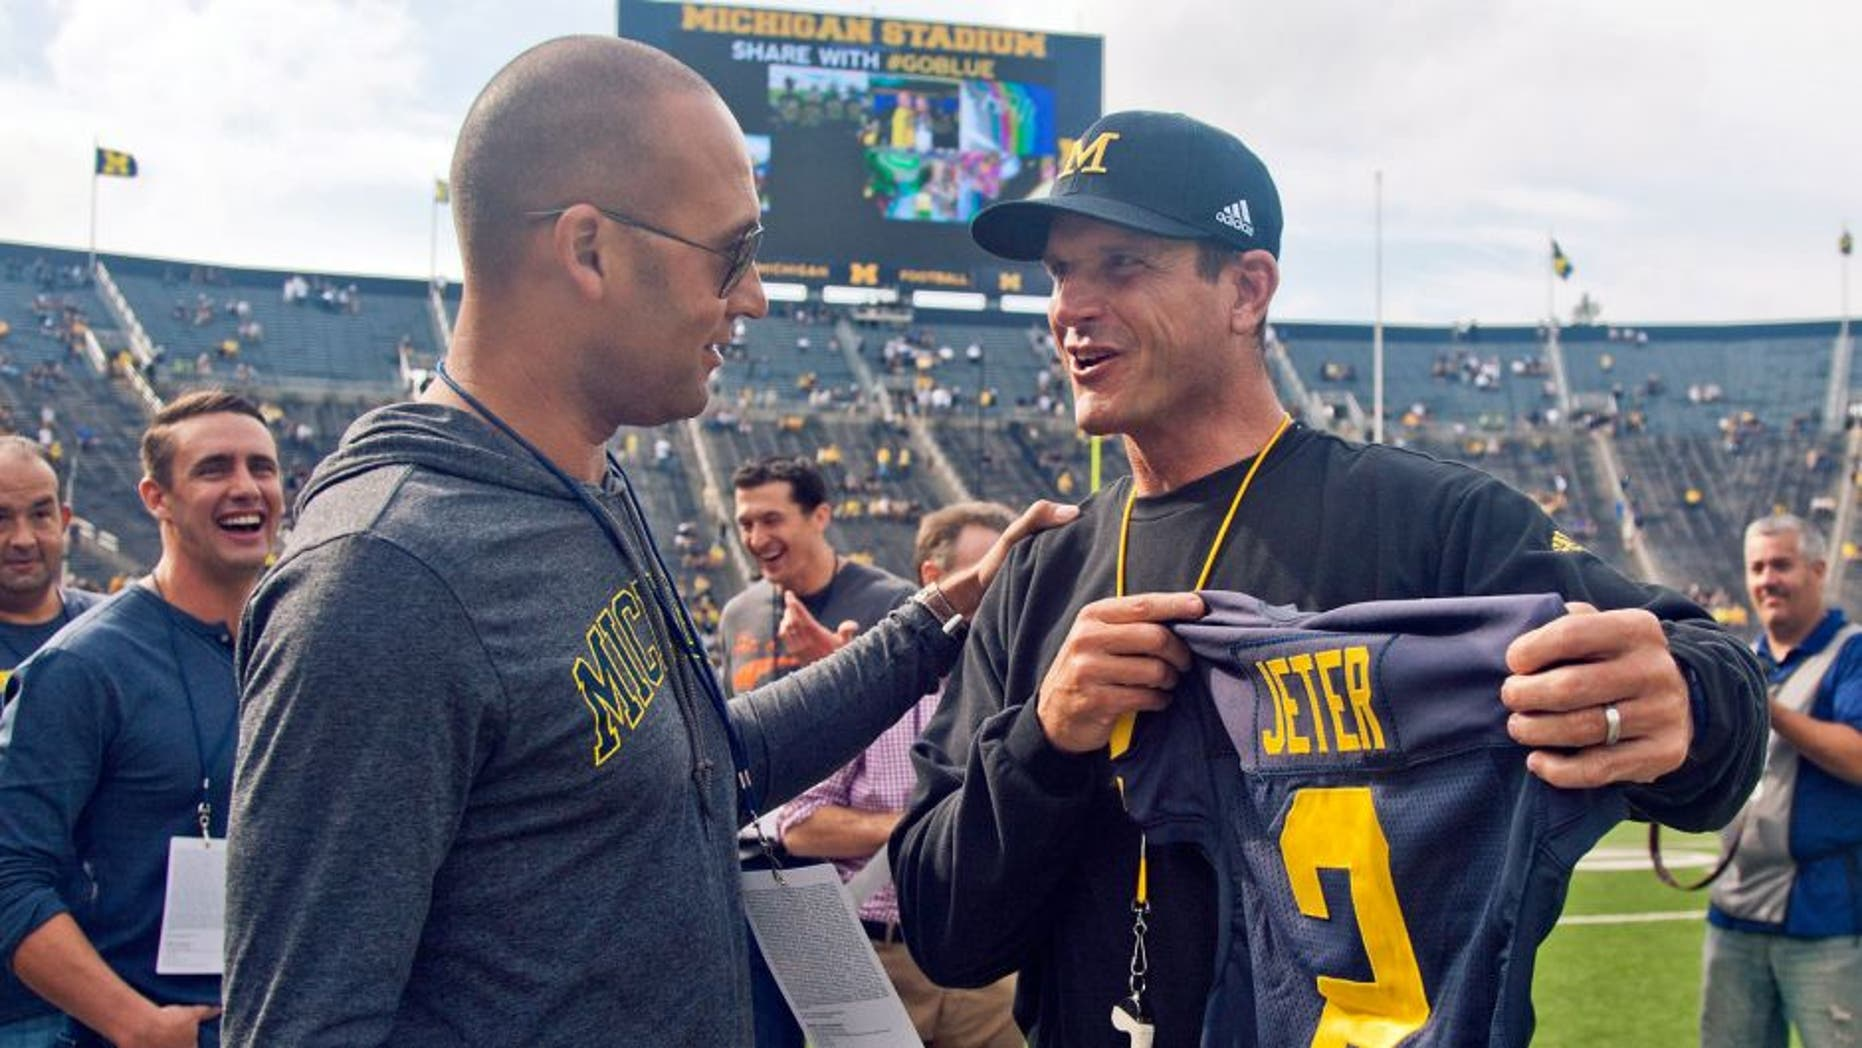 Former New York Yankees baseball player Derek Jeter, left, receives a jersey with his name an No, 2 from Michigan head coach Jim Harbaugh, right, before Michgan's NCAA college football game against BYU in Ann Arbor, Mich., Saturday, Sept. 26, 2015. Jeter graduated high school in Kalamazoo, Mich. and was offered a scholarship to play baseball for Michigan. (AP Photo/Tony Ding)